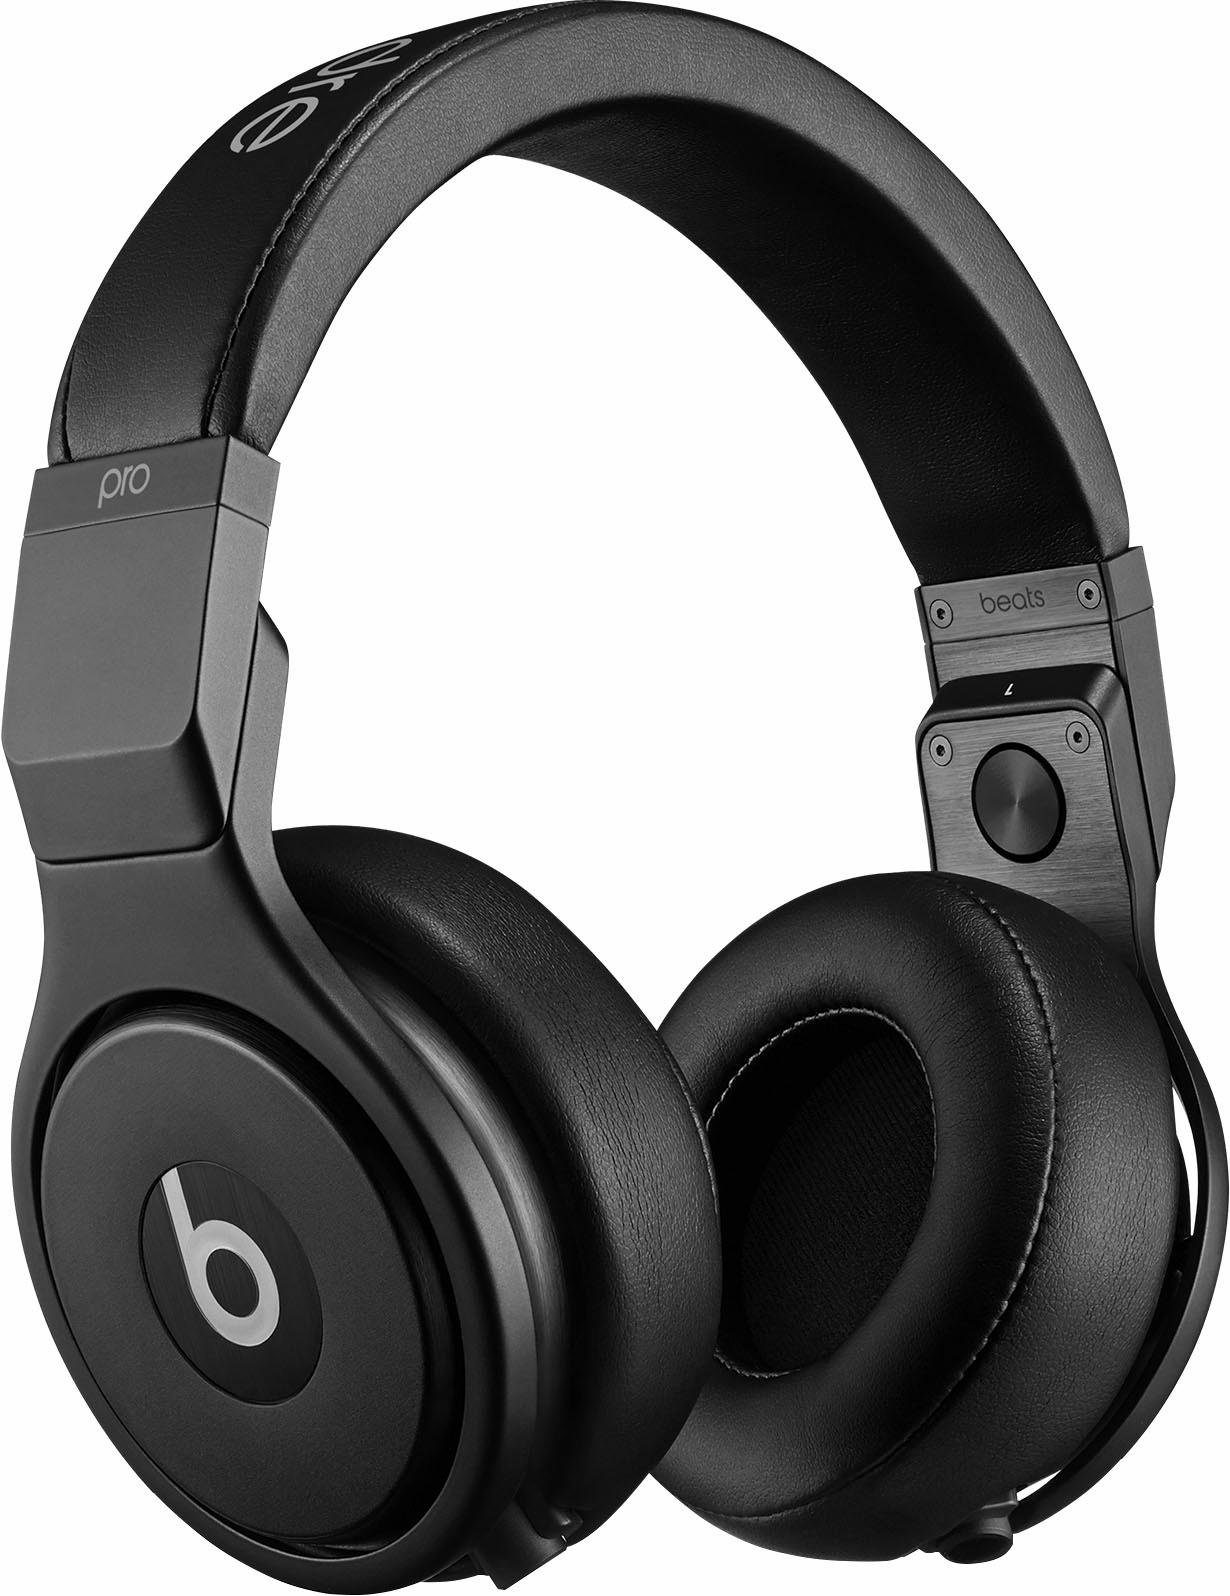 Beats wireless headphones accessories replacement - beats wireless headphones gloss black